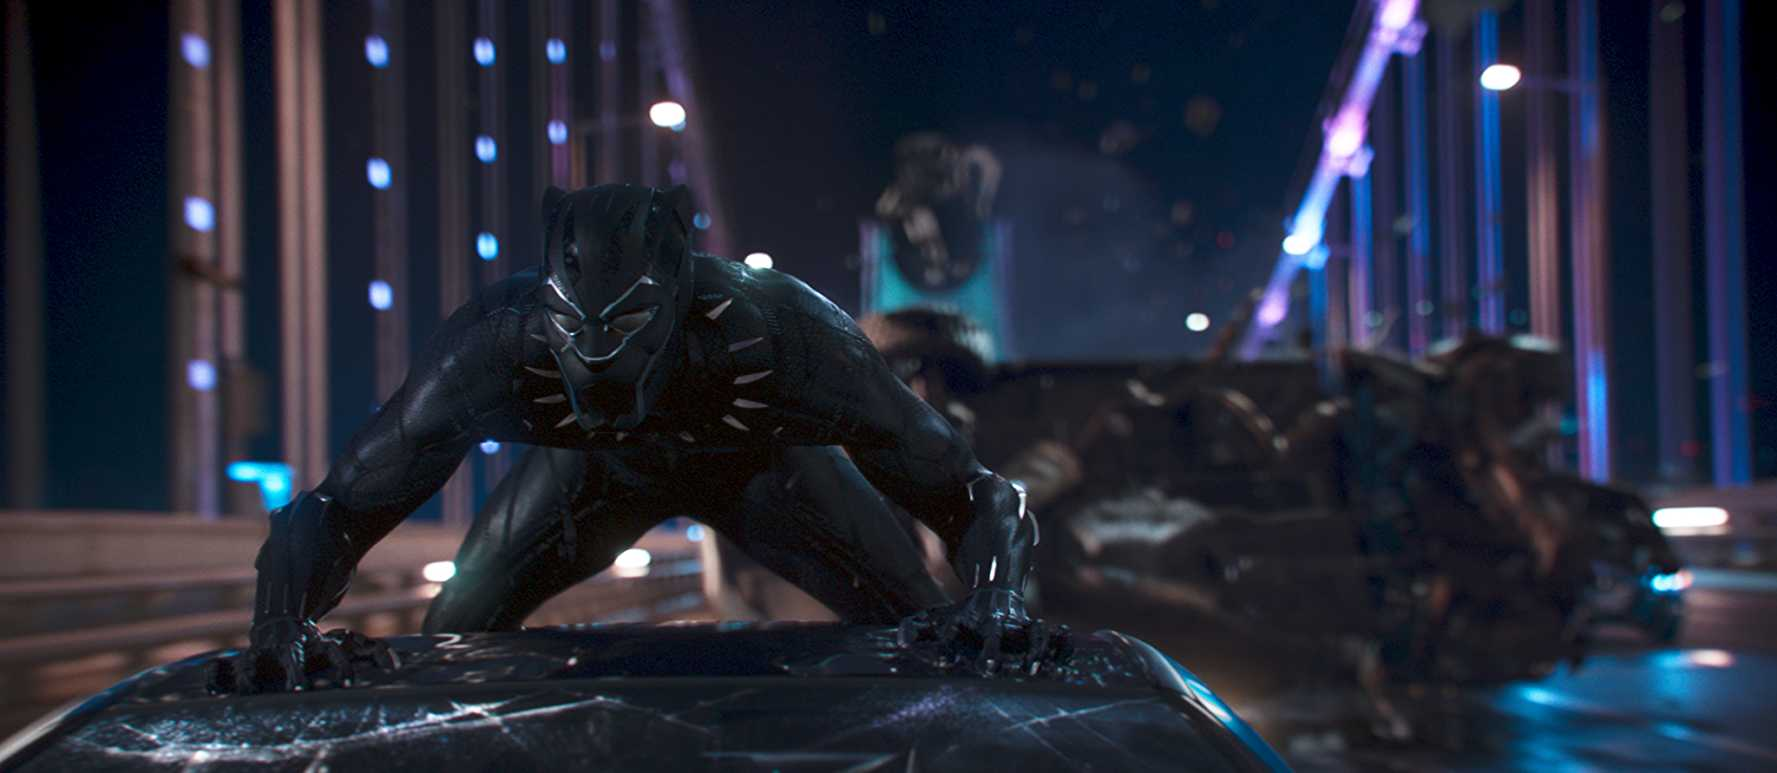 'Black Panther' could easily get an entry into this year's Oscars without the category. (IMDb)